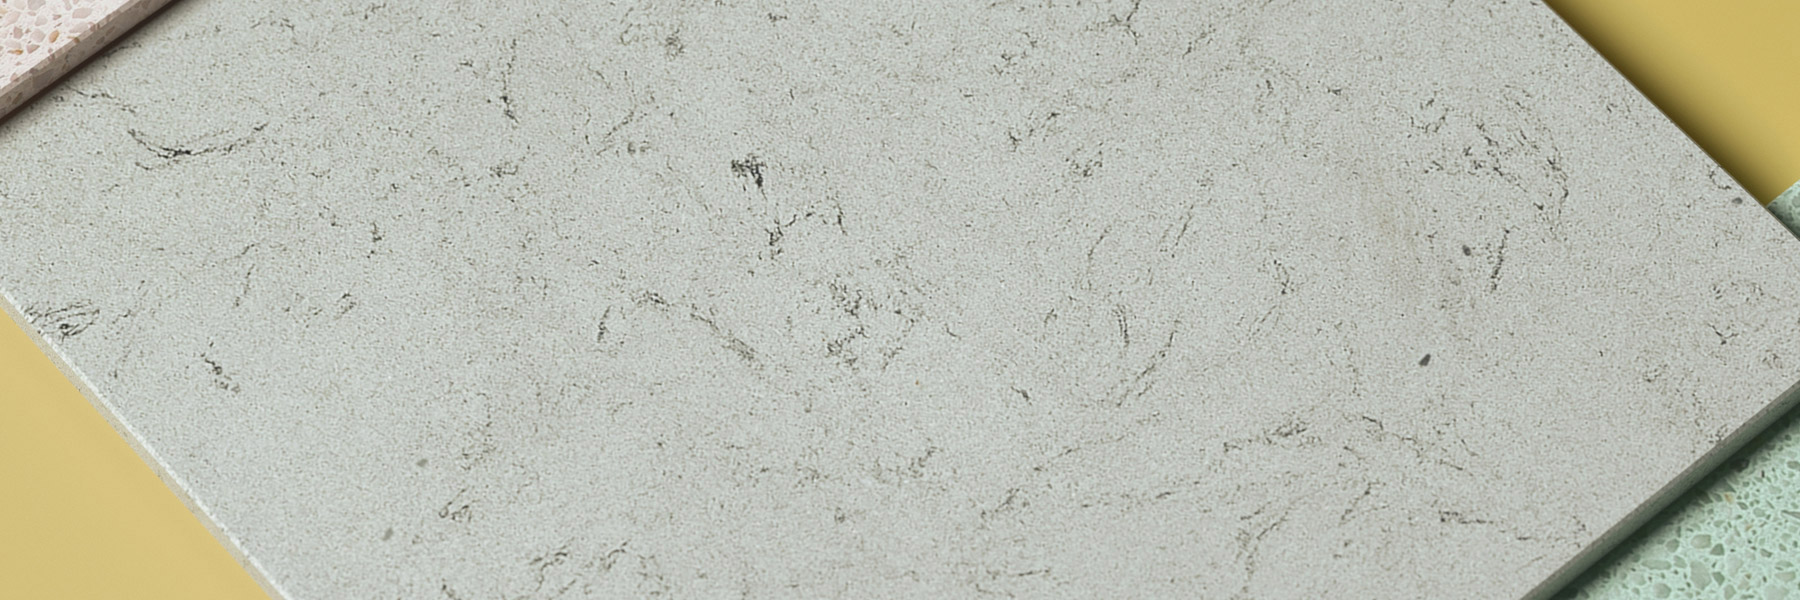 COMPAC, COMPACSURFACES, COMPAC THE SURFACE COMPANY, PETRA, GREY CHIP